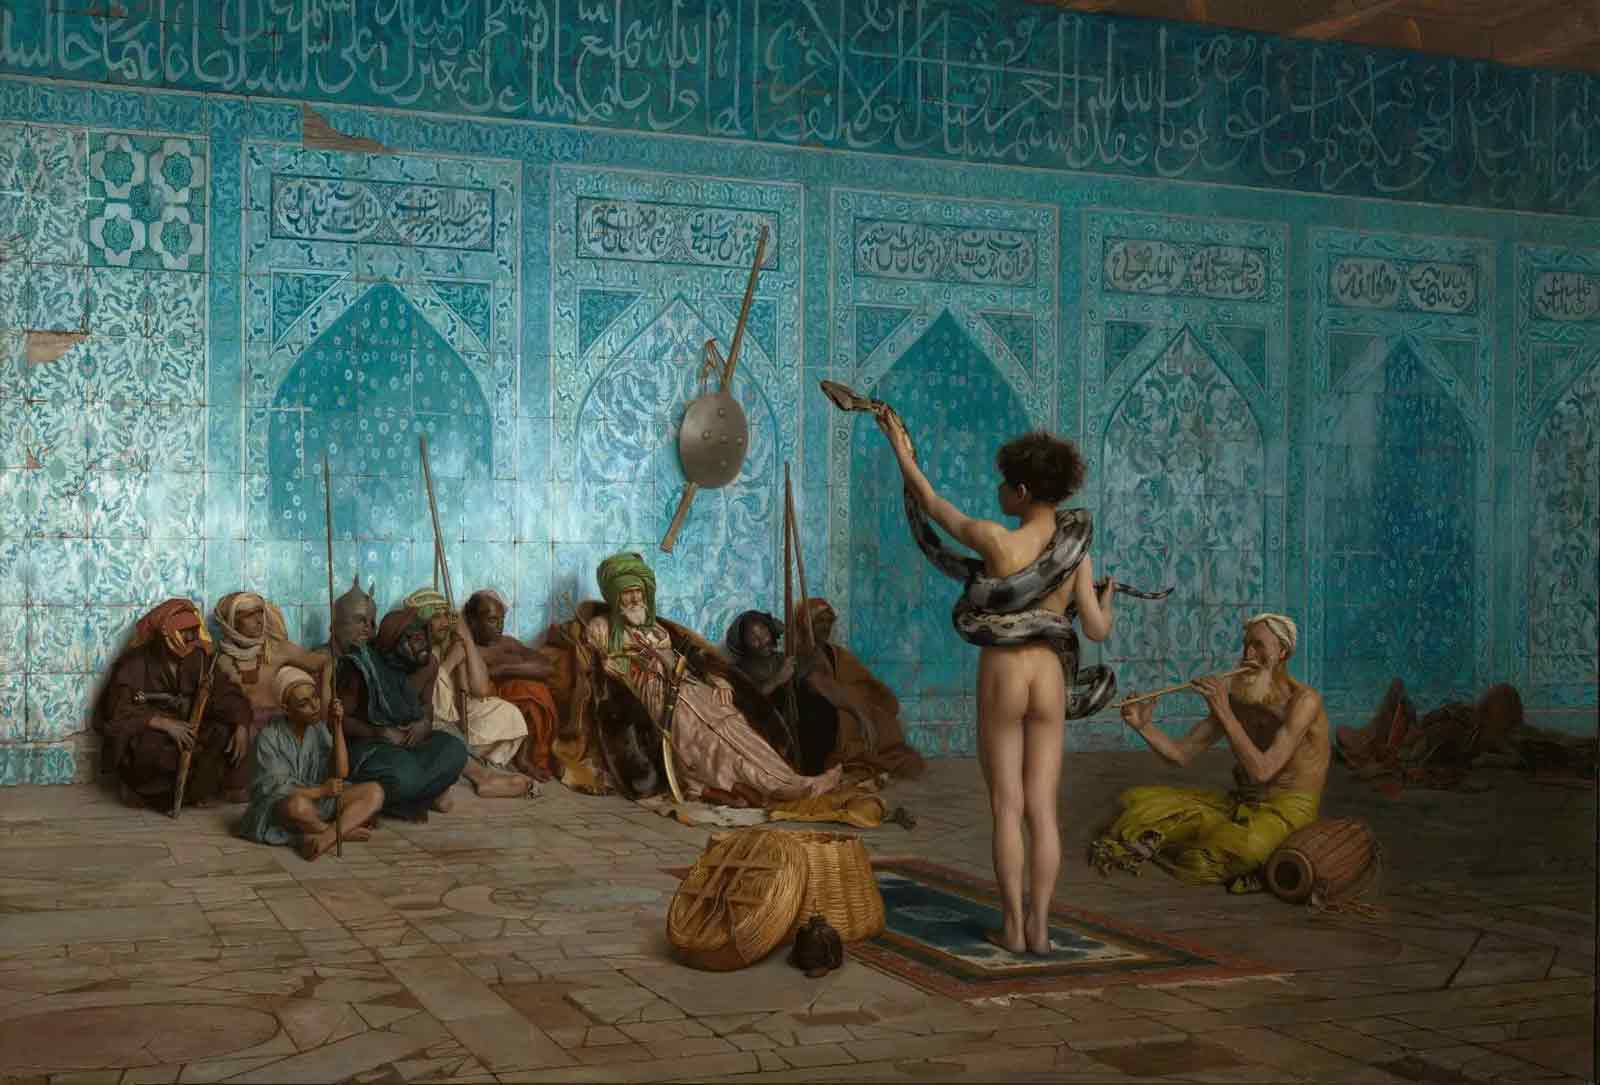 In an old Orientalist painting, a young boy stands with a snake draped over his arms and shoulders in front of an building that appears to be a Mosque